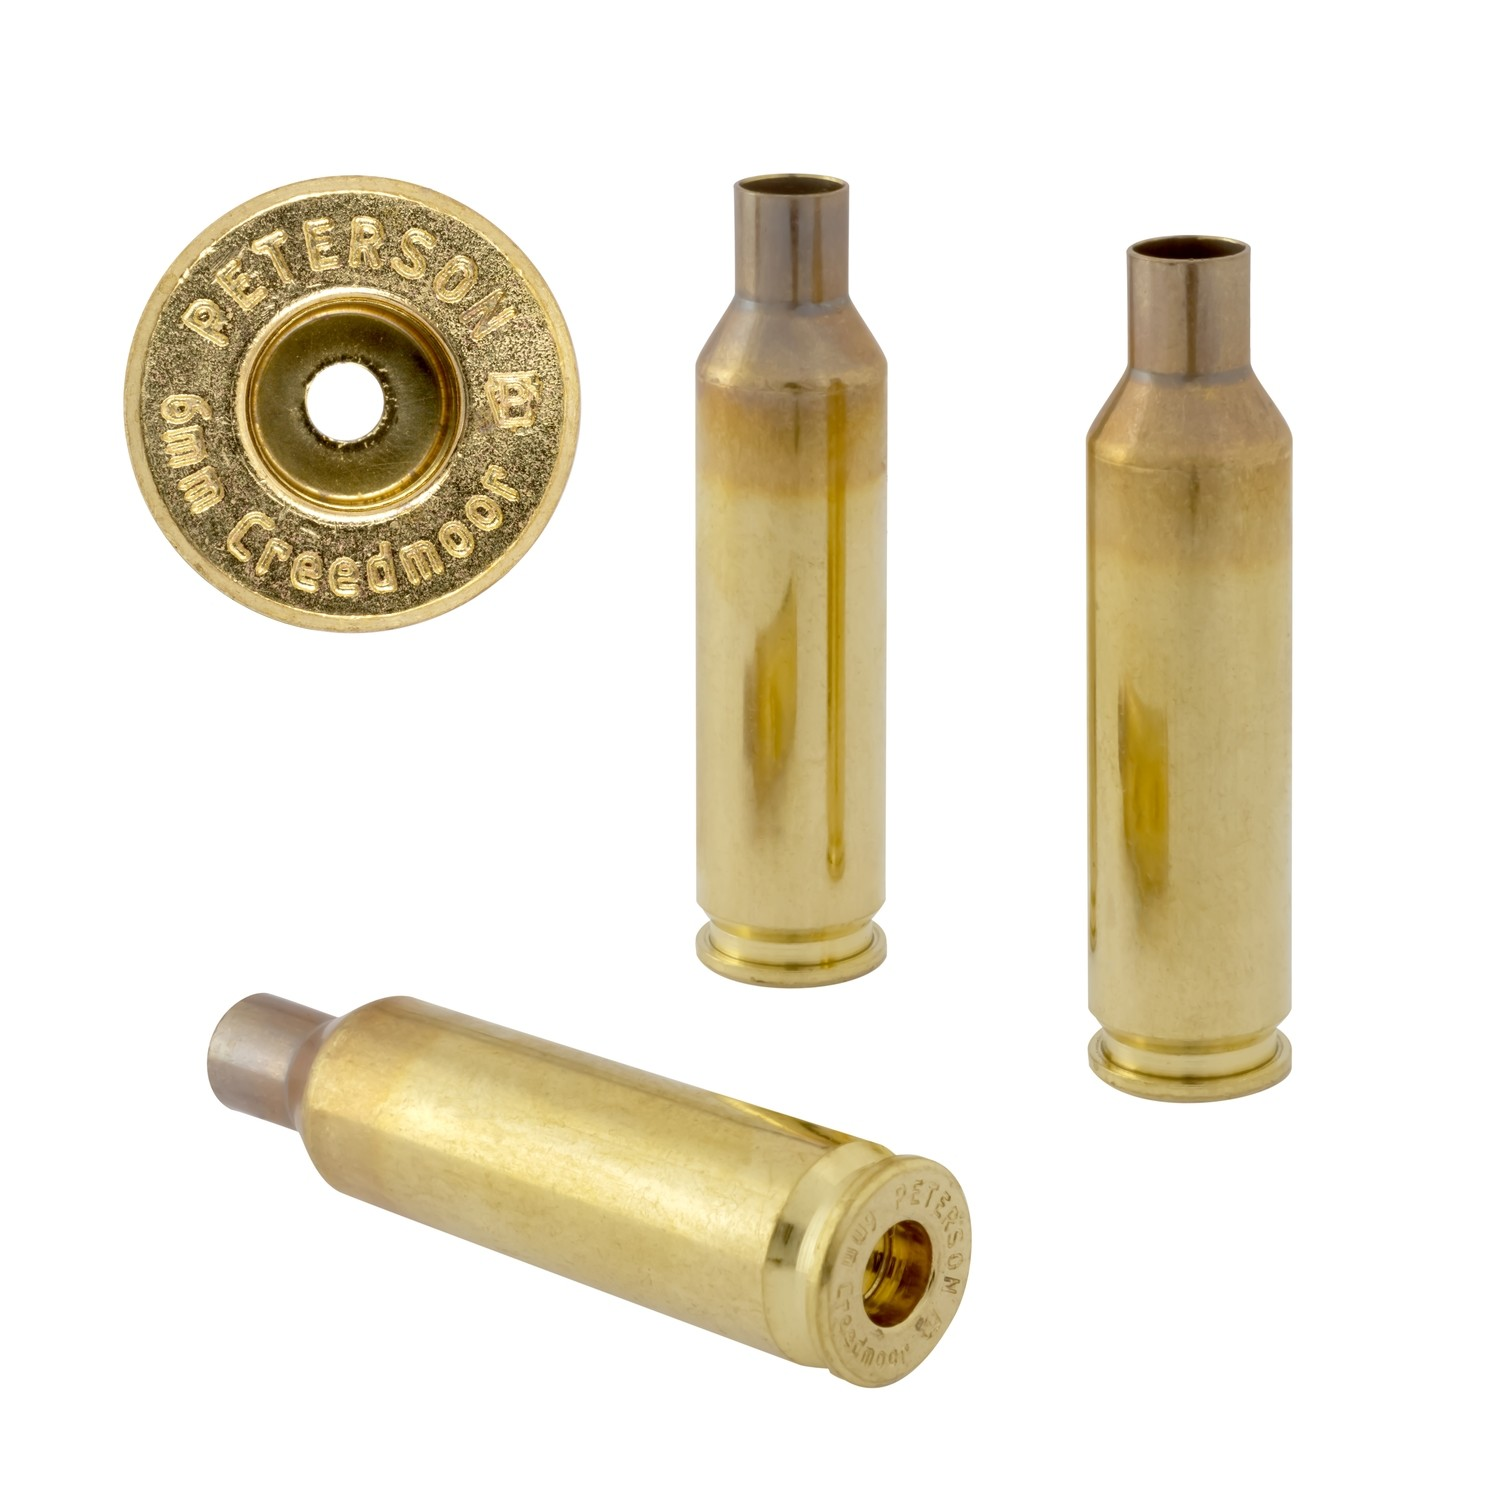 Peterson 6mm Creedmoor Select - Box of 50 Brass Rifle Casings